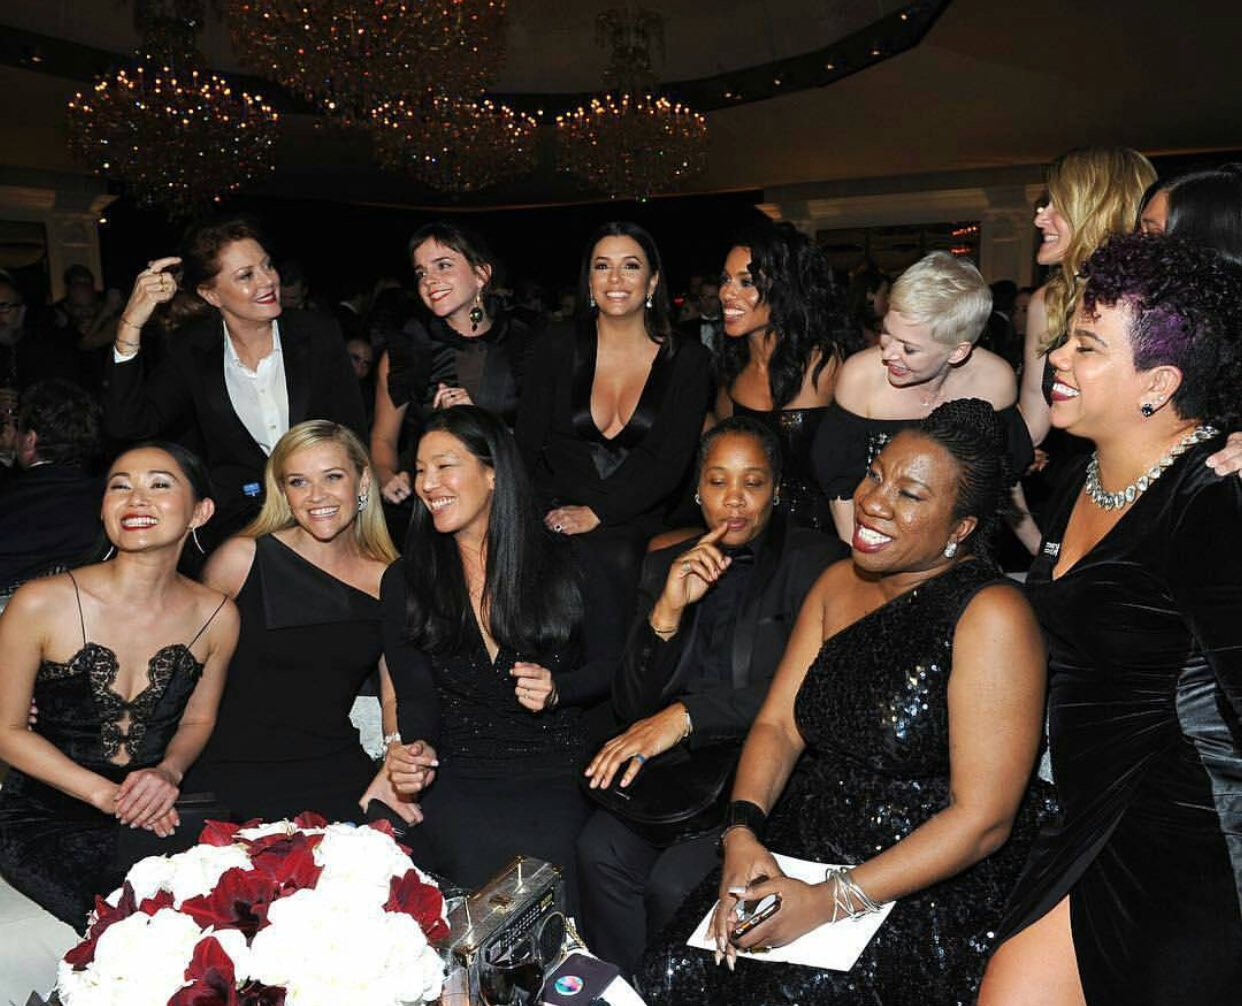 Actresses and Activists ❤❤❤ #TIMESUP #WhyWeWearBlack #GoldenGlobes2018 https://t.co/8MPQCIzHIB